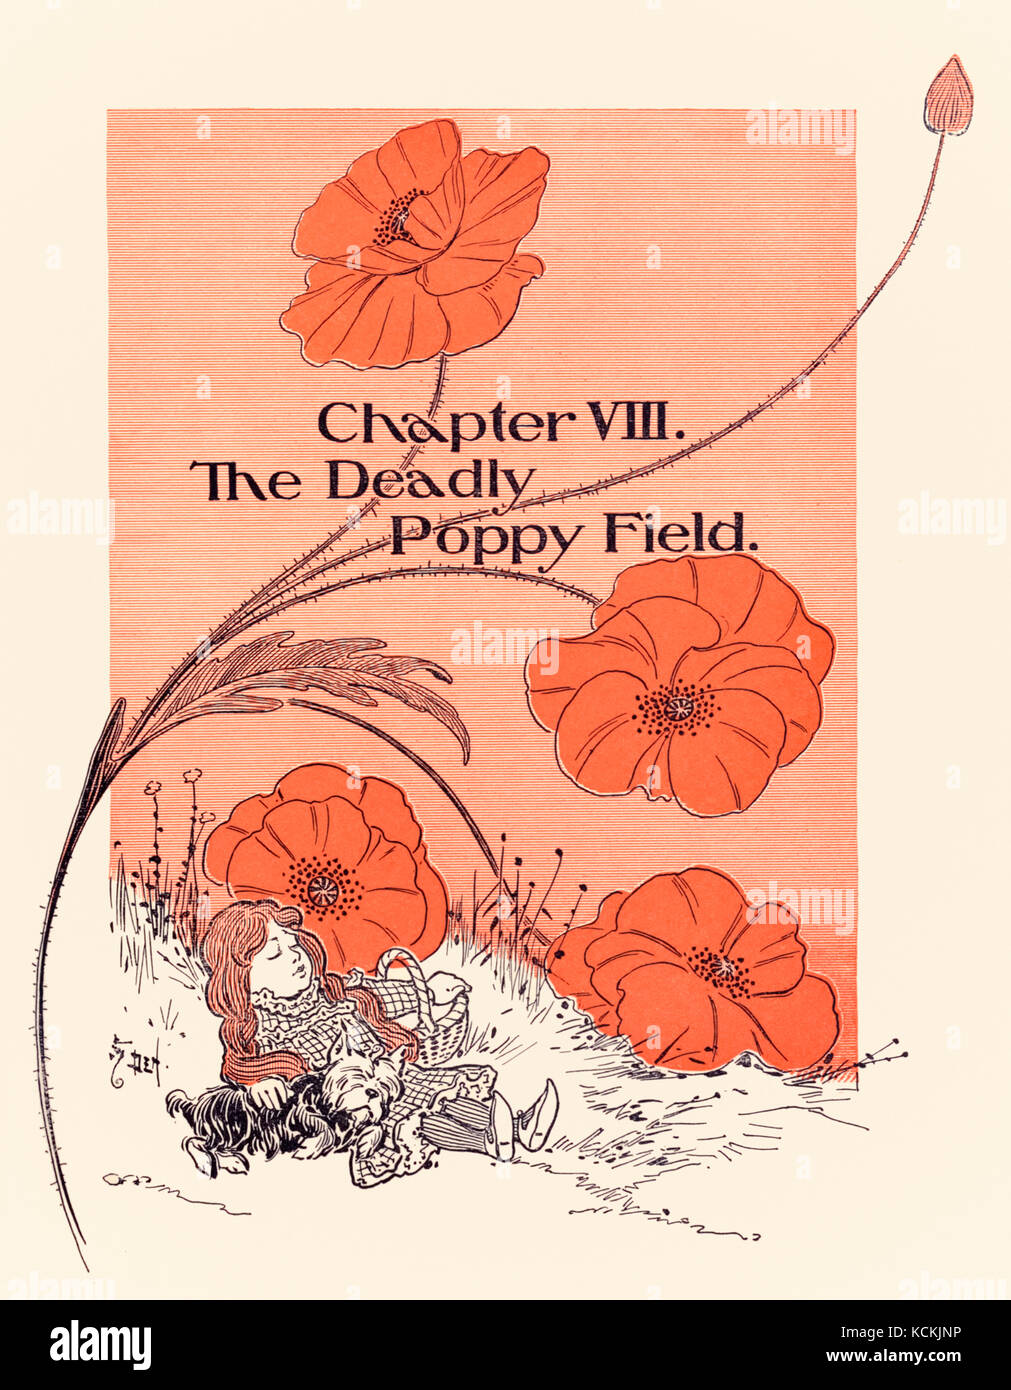 'Chapter VIII The Deadly Poppy Field', chapter opener from 'The Wonderful Wizard of Oz' by L. Frank Baum (1856-1919) - Stock Image